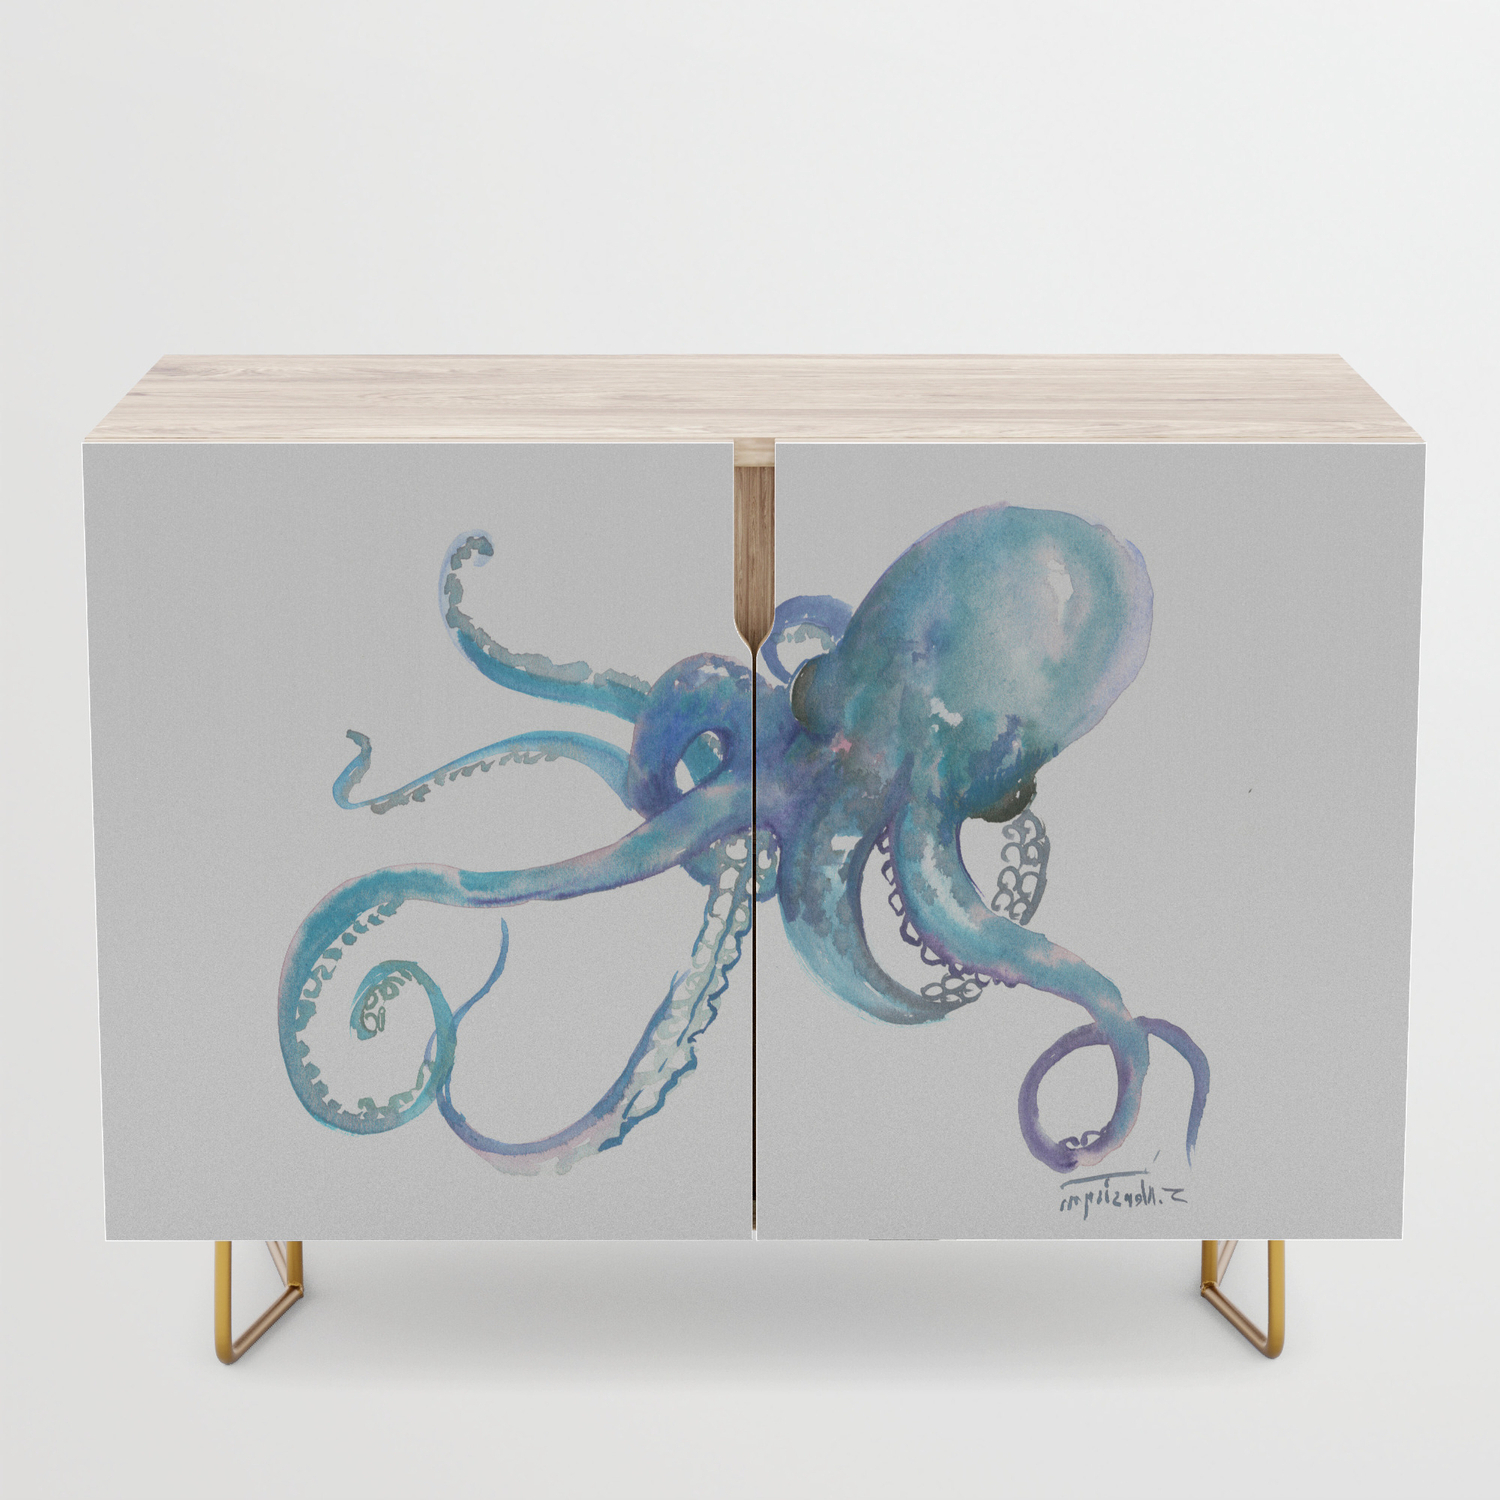 Octopus, Turquoise Blue, Sky Blue Underwater Scene Sea World Octopus Art Credenza Pertaining To Turquoise Skies Credenzas (View 14 of 20)